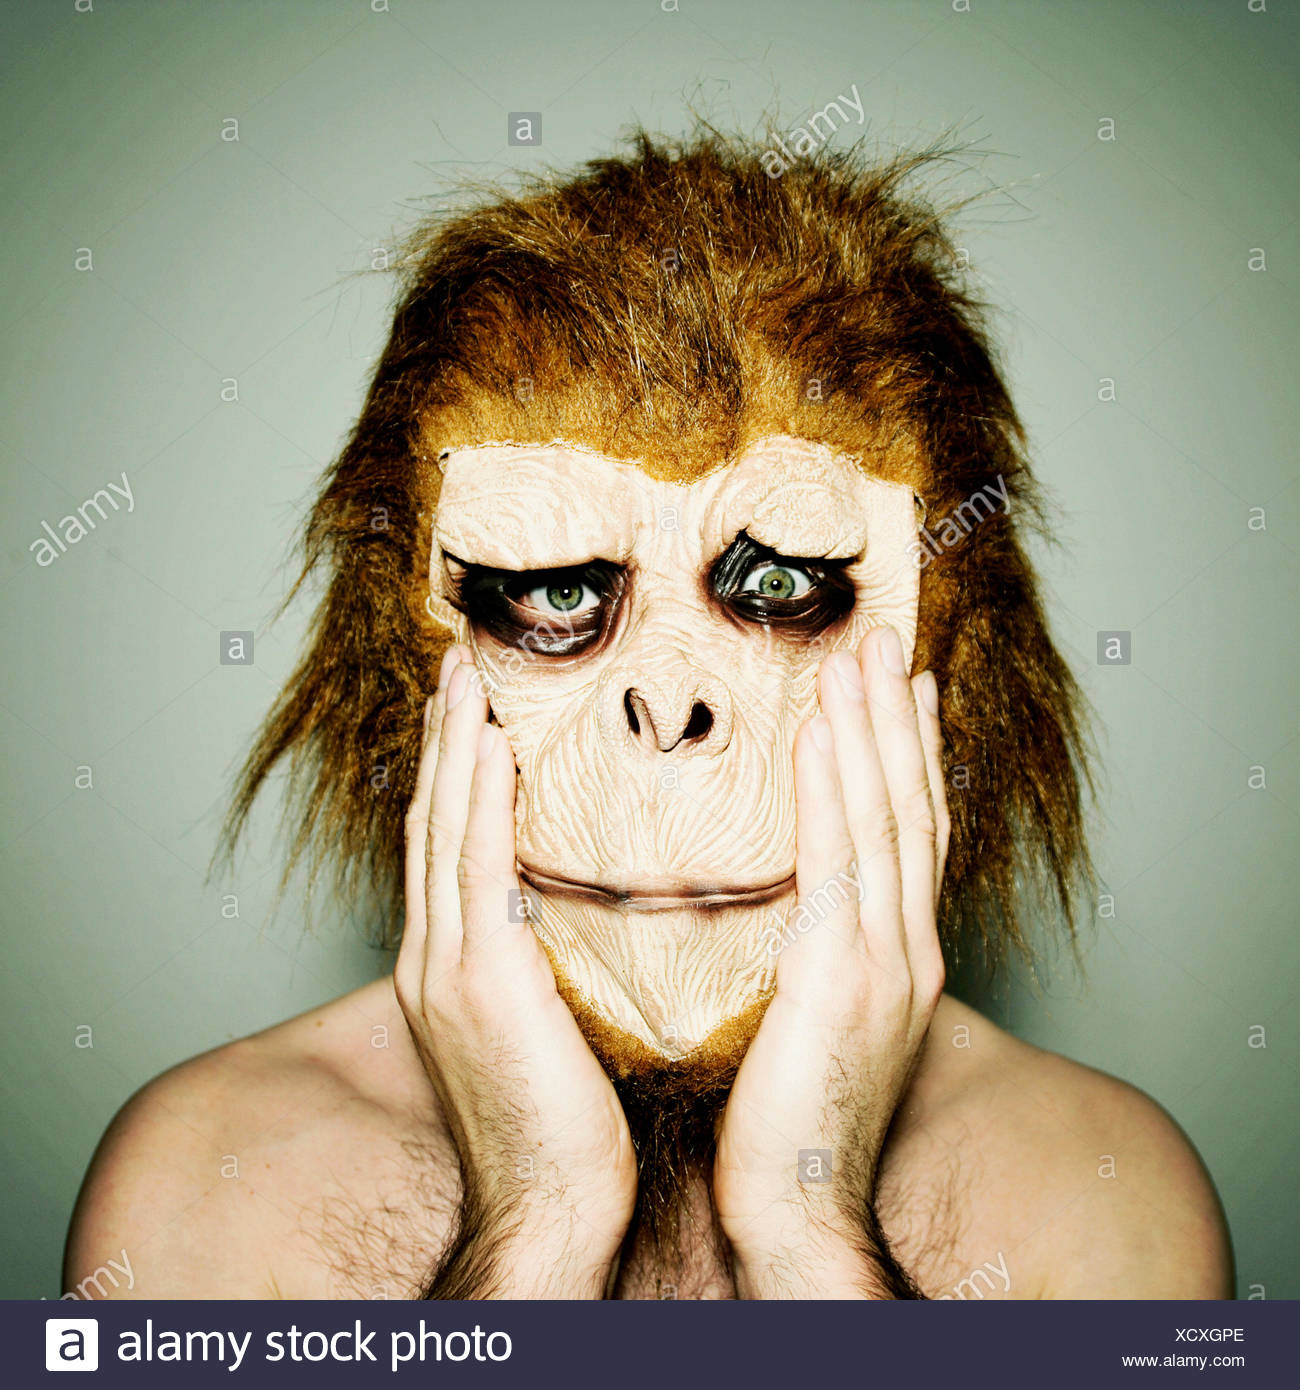 man,humor,bizarre,gorilla,monkey mask Stock Photo